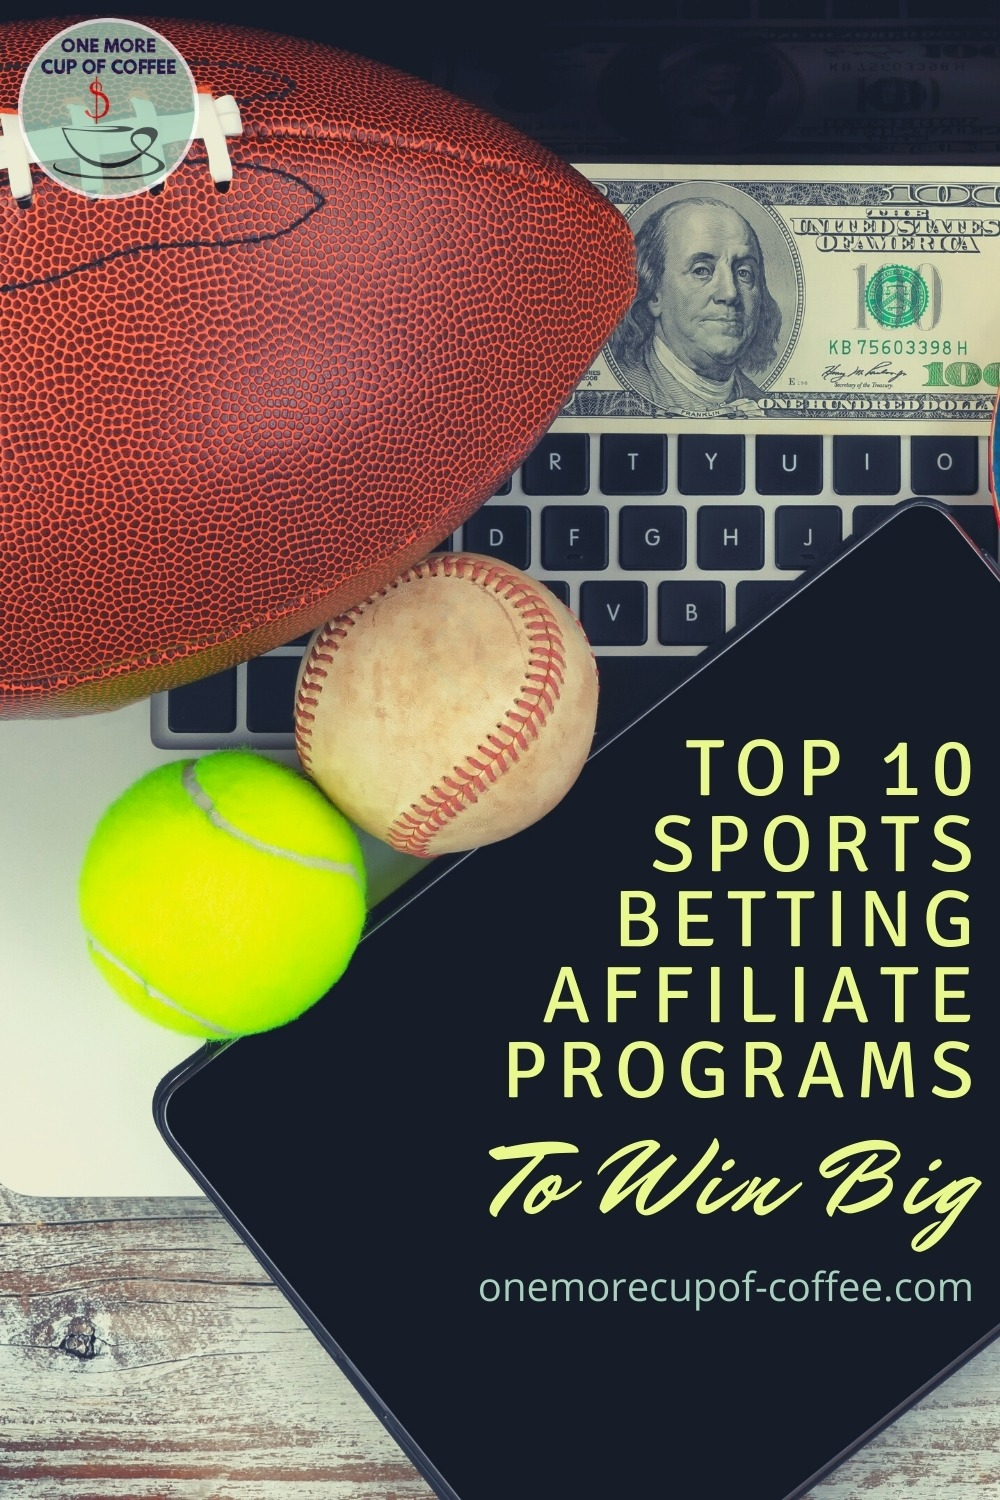 """tablet on laptop with 100-dollar bill on it and a football, tennis ball, and baseball; with text overlay """"Top 10 Sports Betting Affiliate Programs To Win Big"""""""